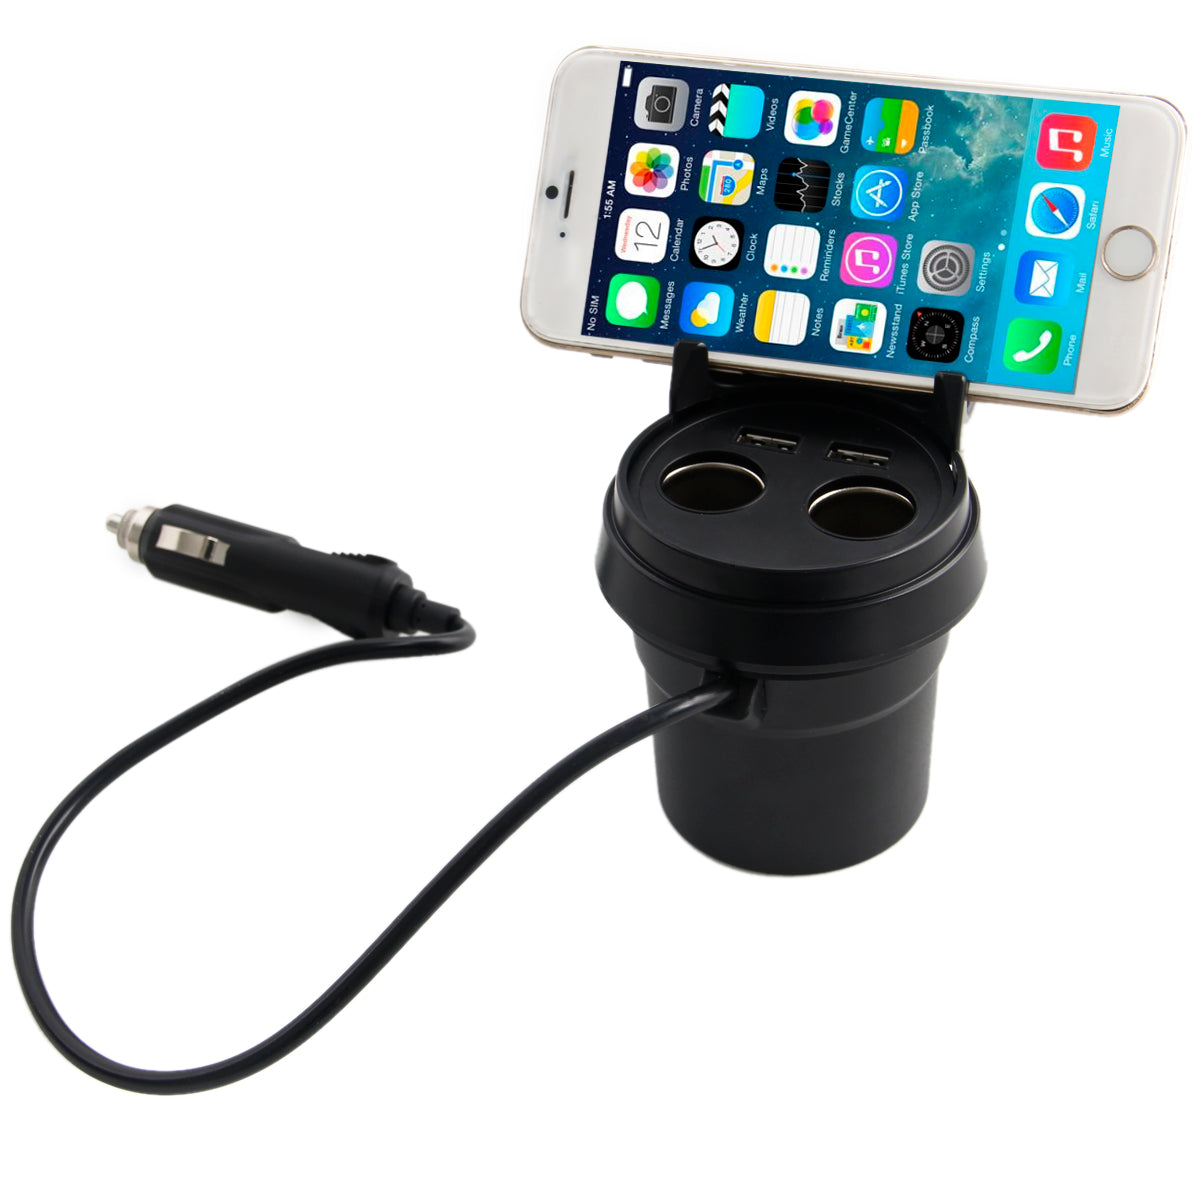 Dual USB Car Charger Adapter with 2 Socket Cigarette Lighter Adapter DC Outlet Splitter